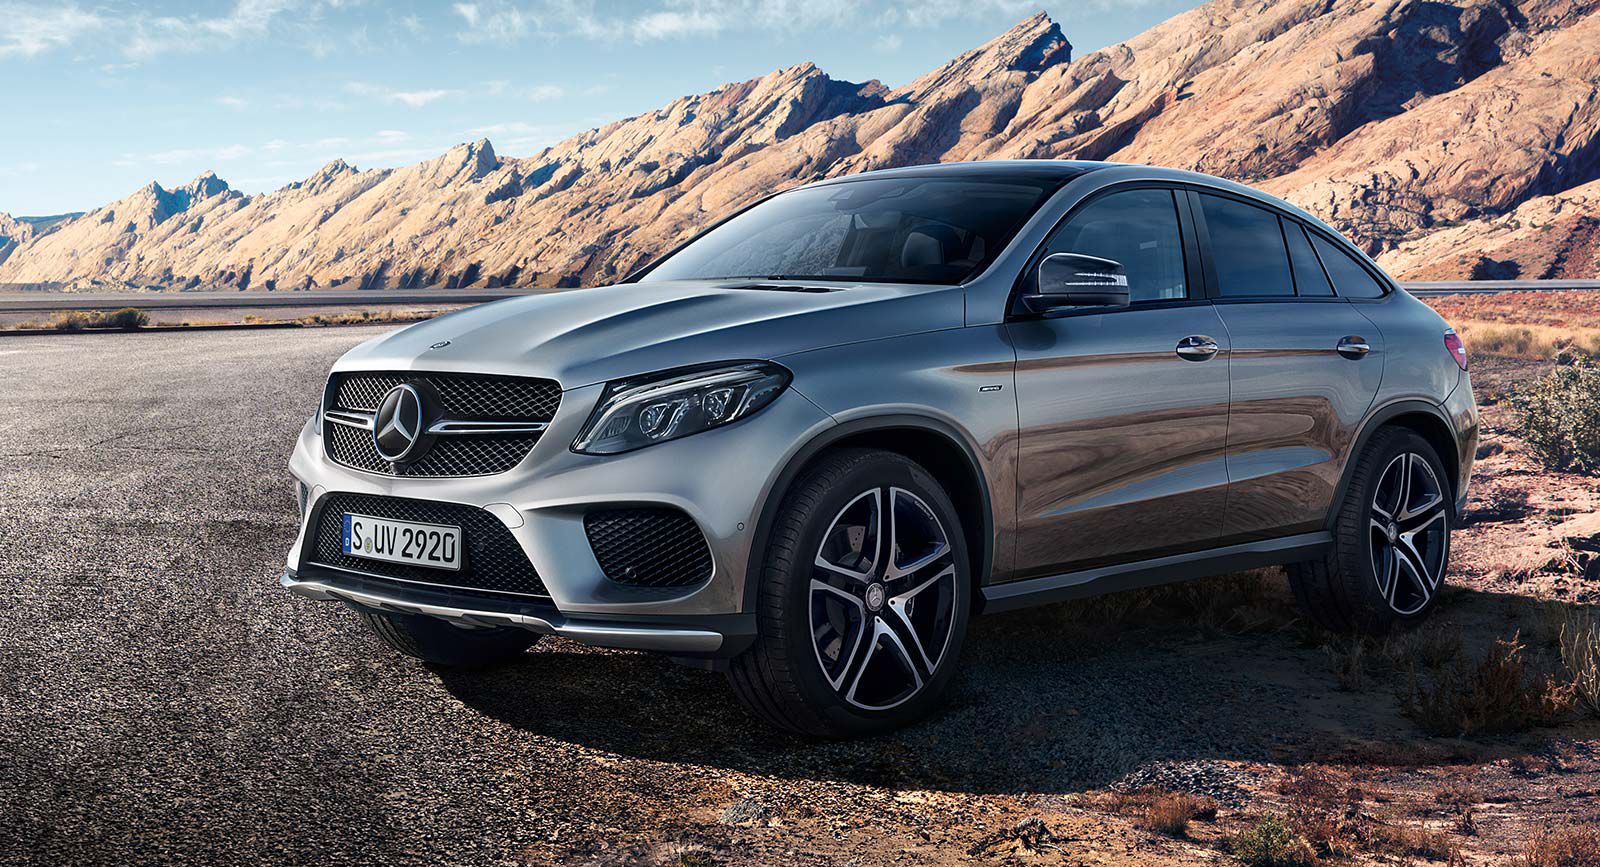 Nuevo mercedes gle coup el suv m s deportivo for Mercedes benz deportivo